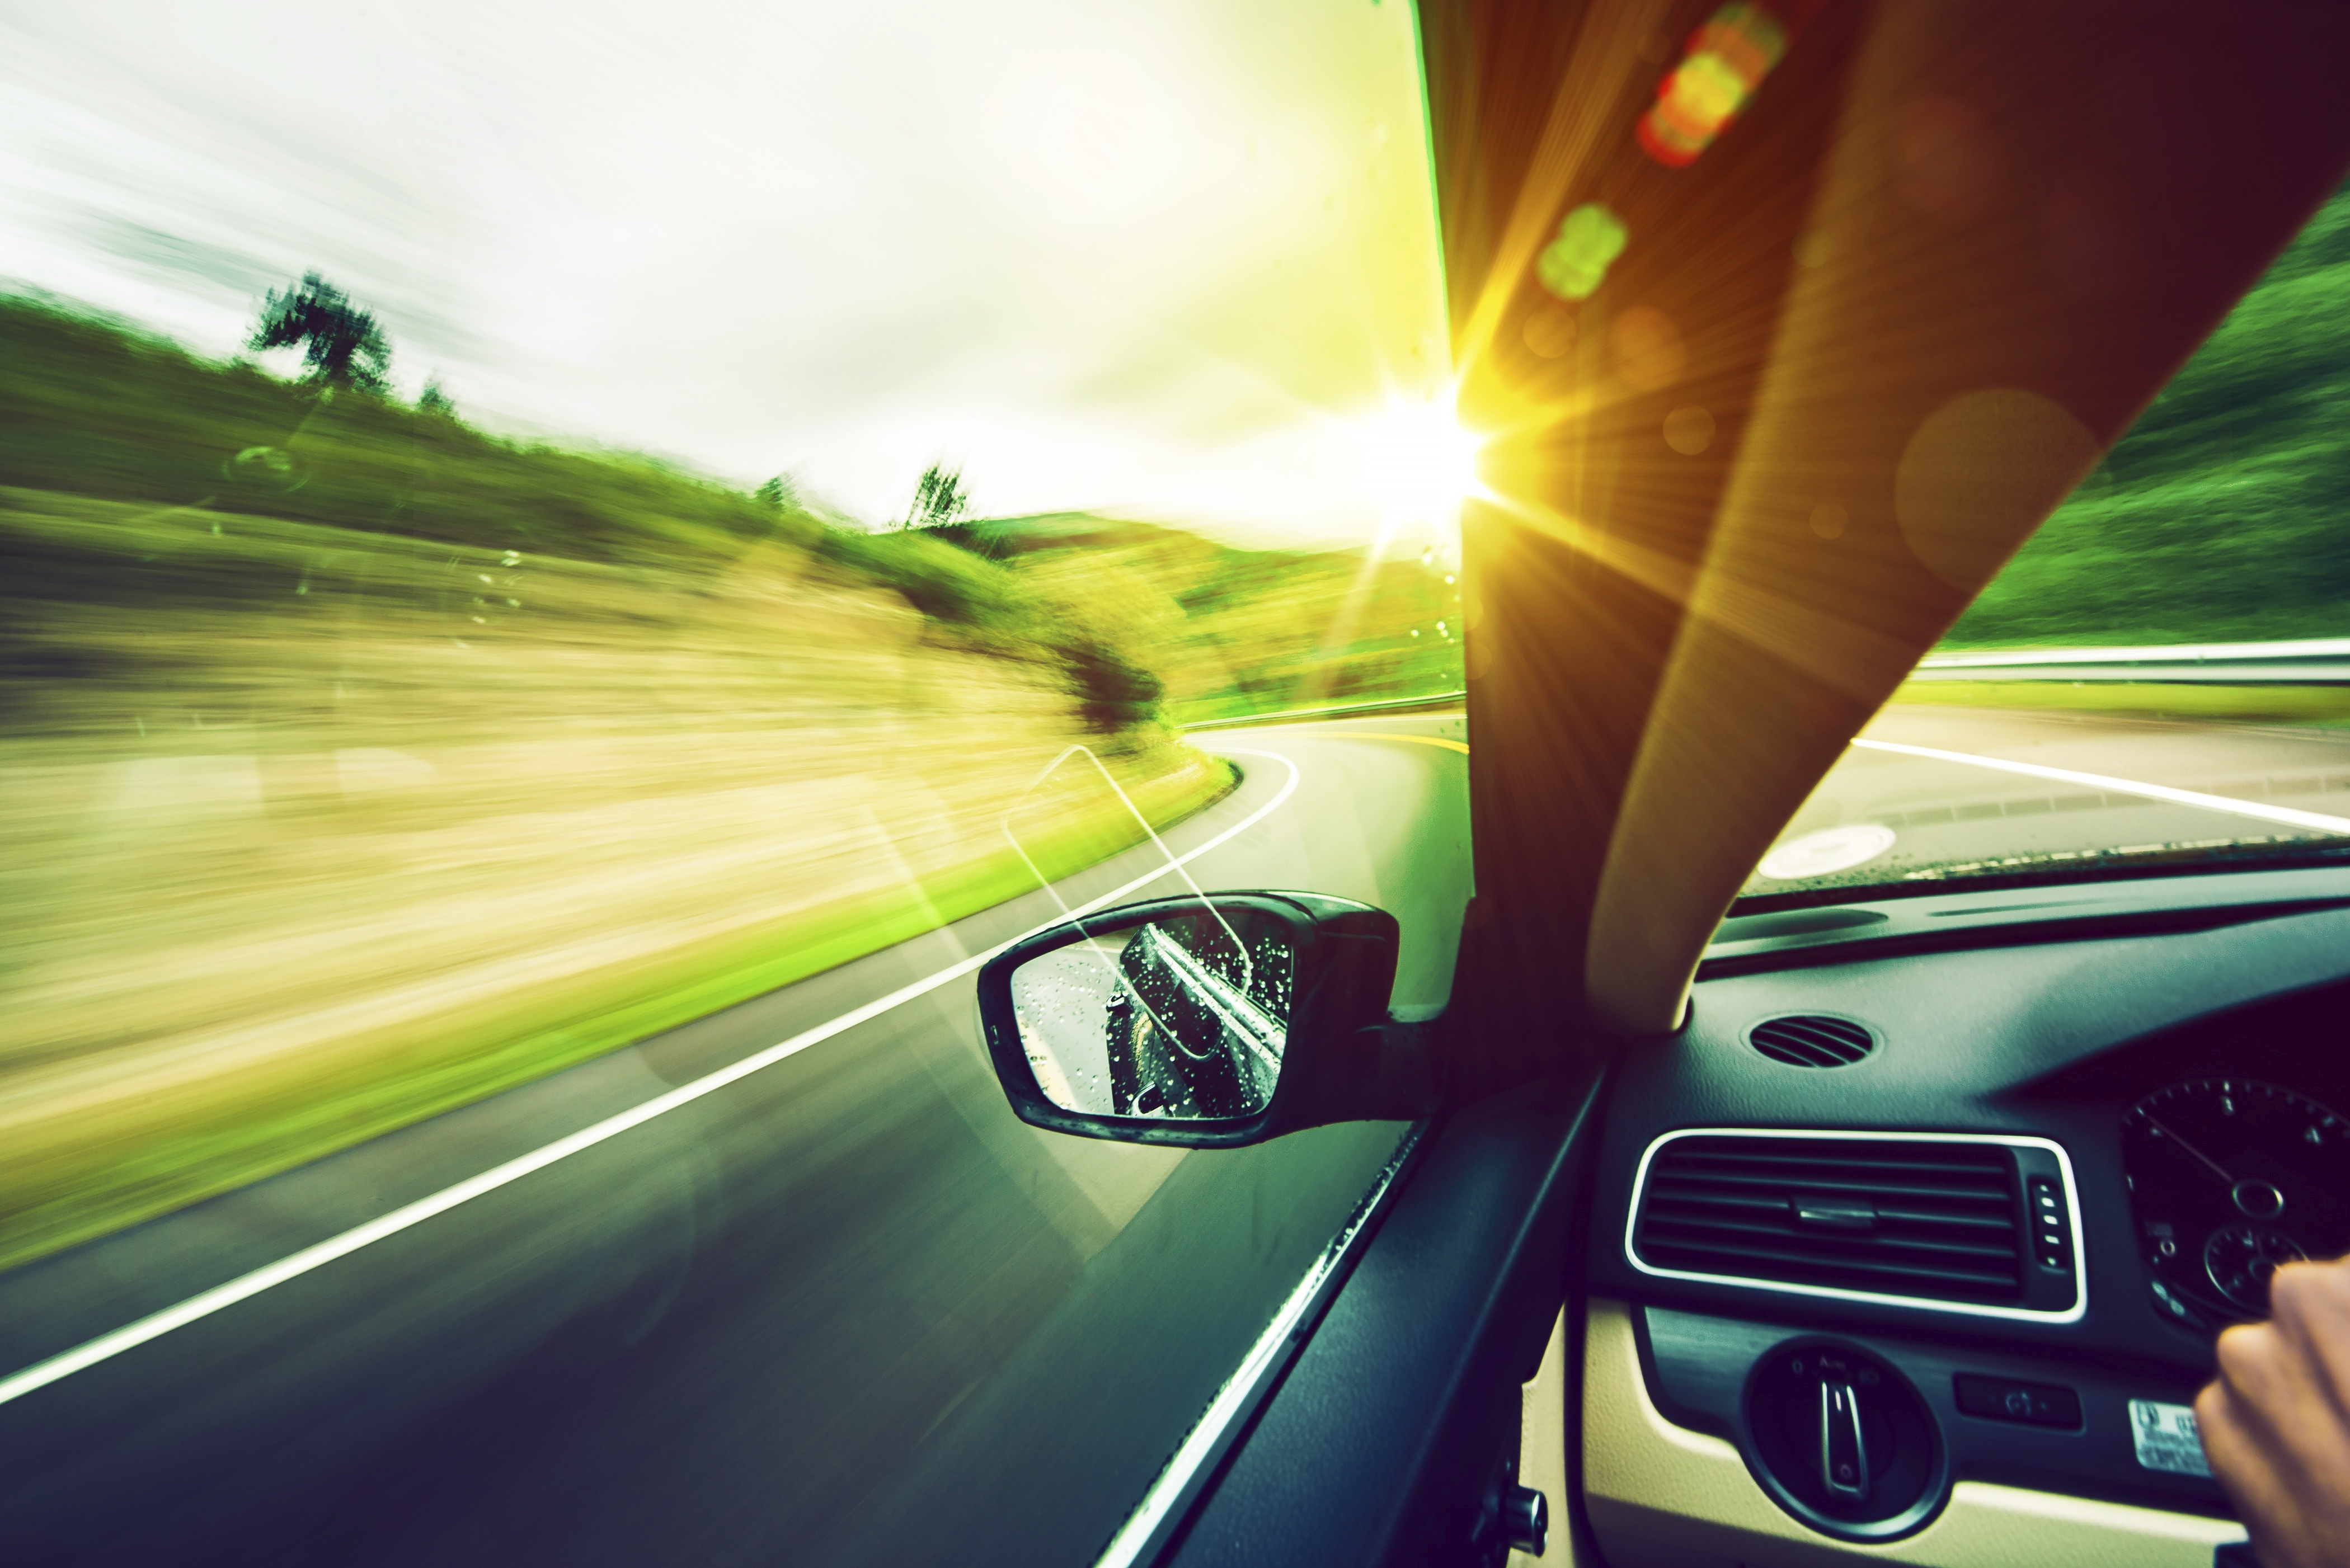 apps fast on the road